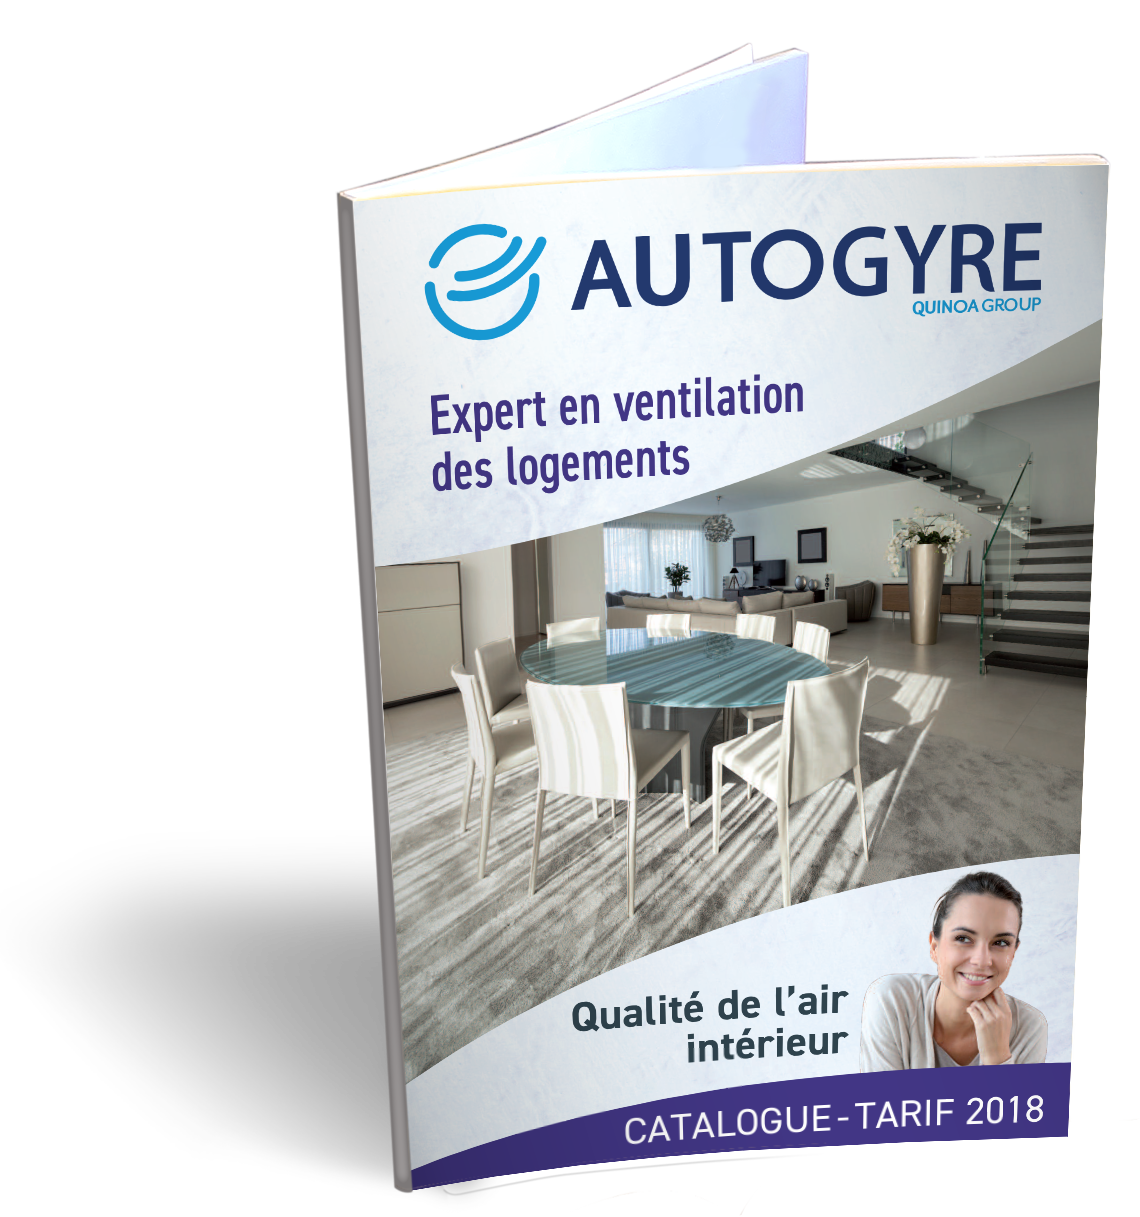 catalogue-autogyre-2018